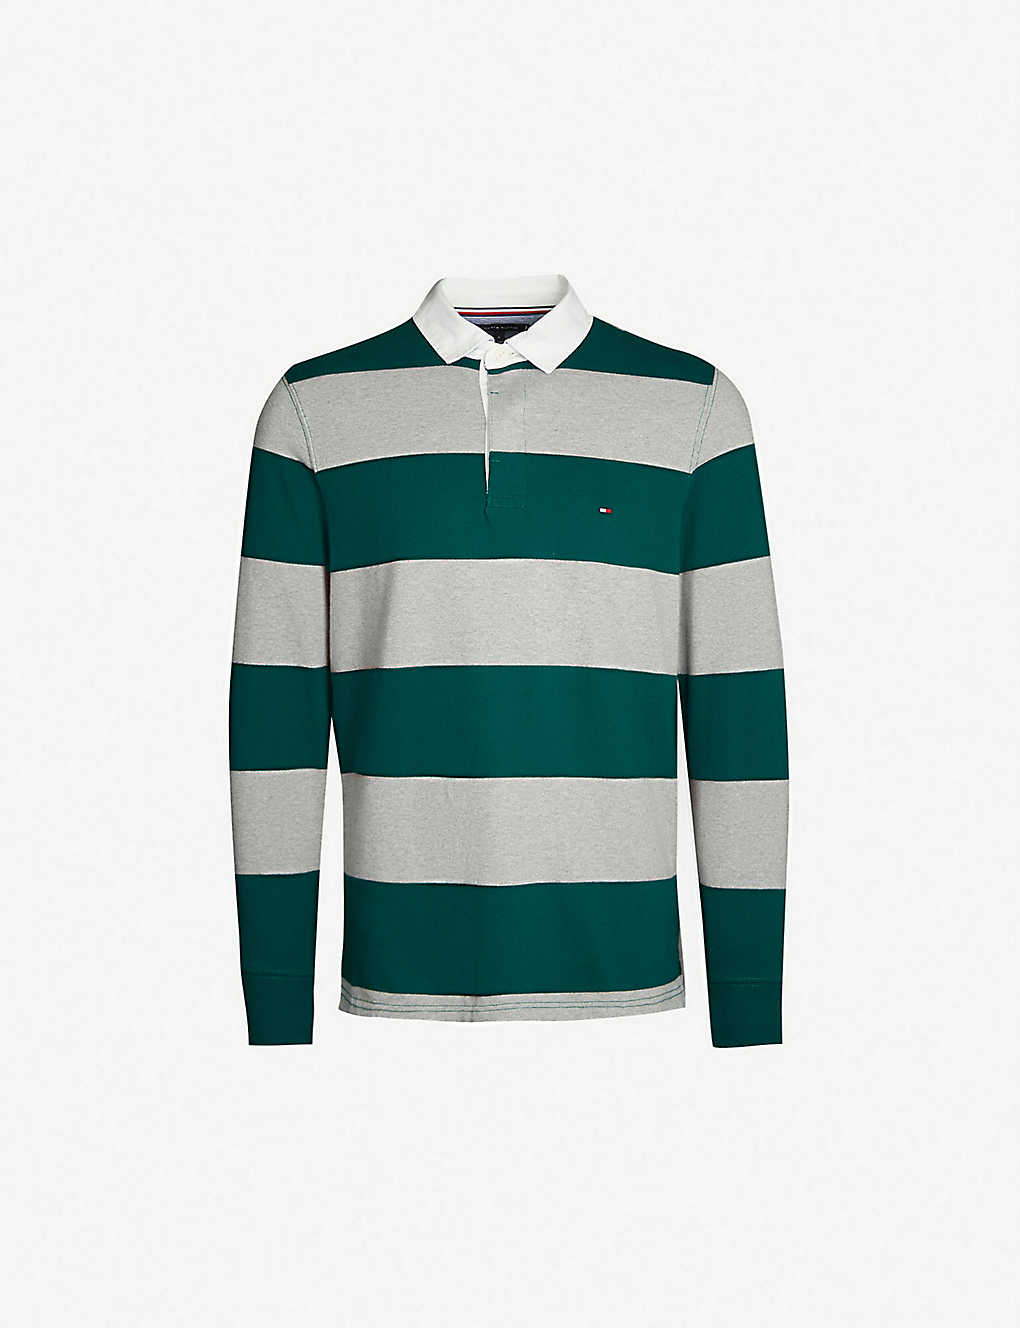 477088684 Rugby Shirts Tommy Hilfiger – EDGE Engineering and Consulting Limited